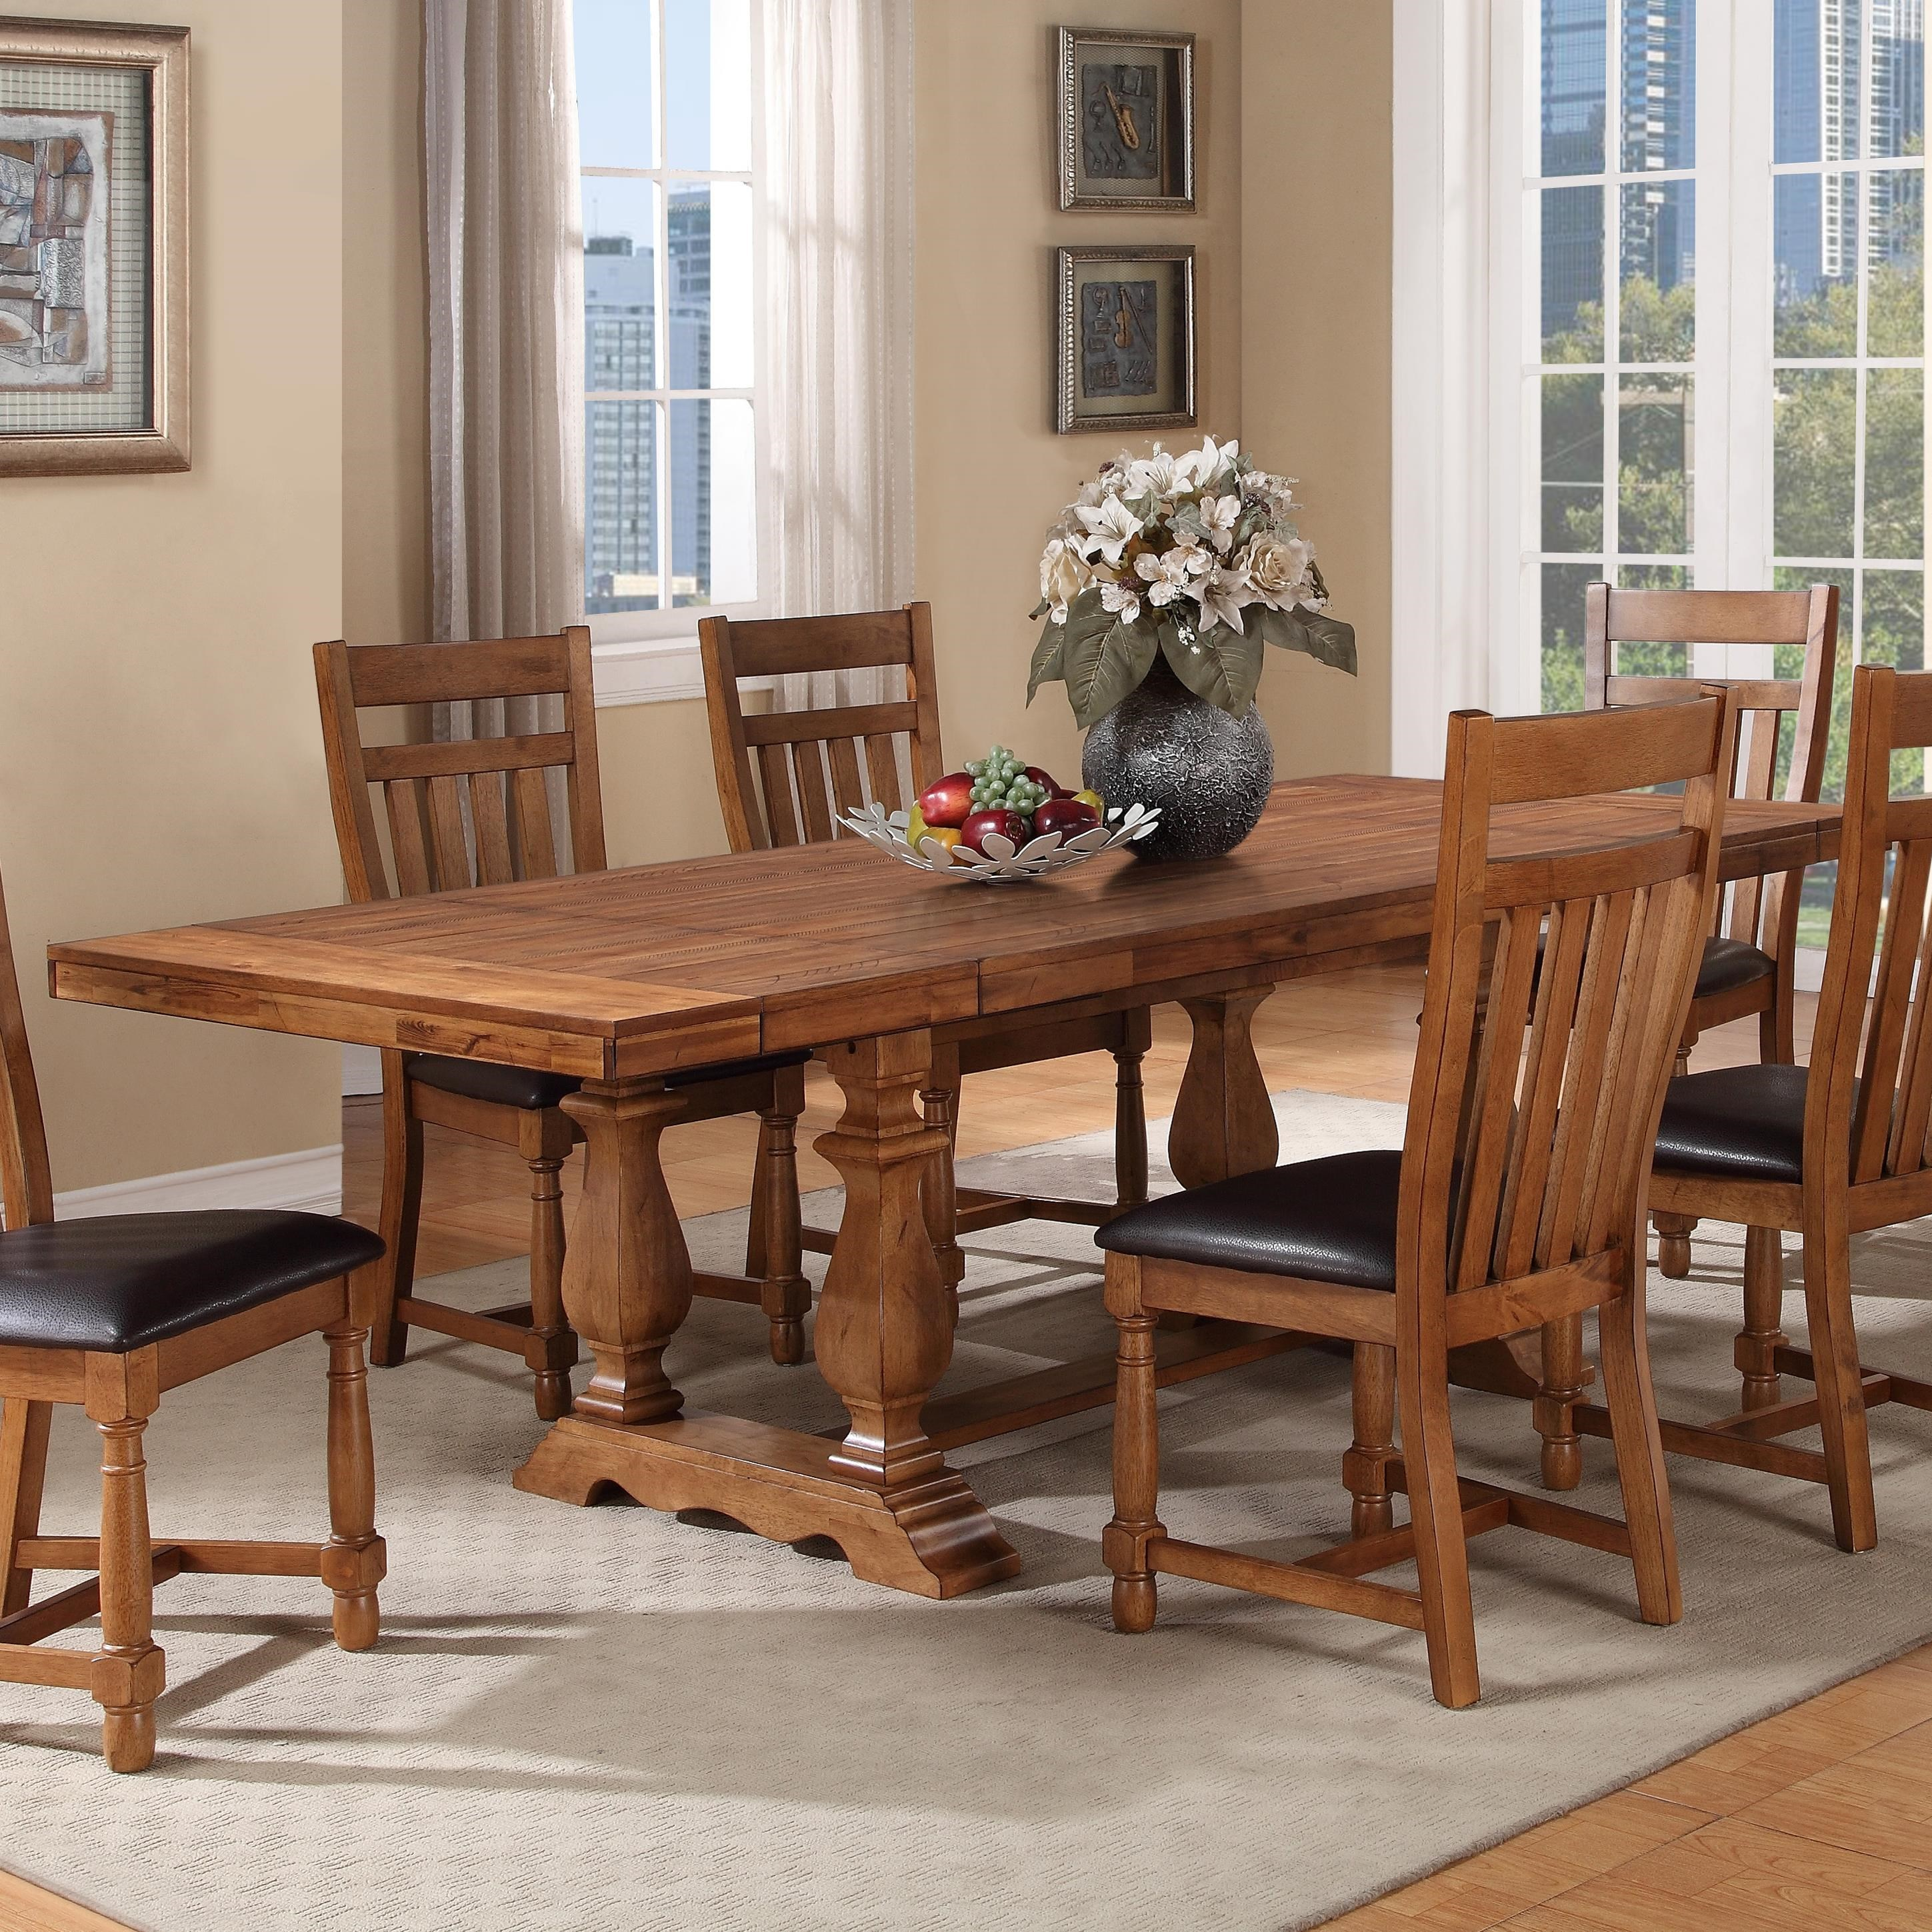 Warehouse M Bryce Canyon Transitional Trestle Table With Two Leaves